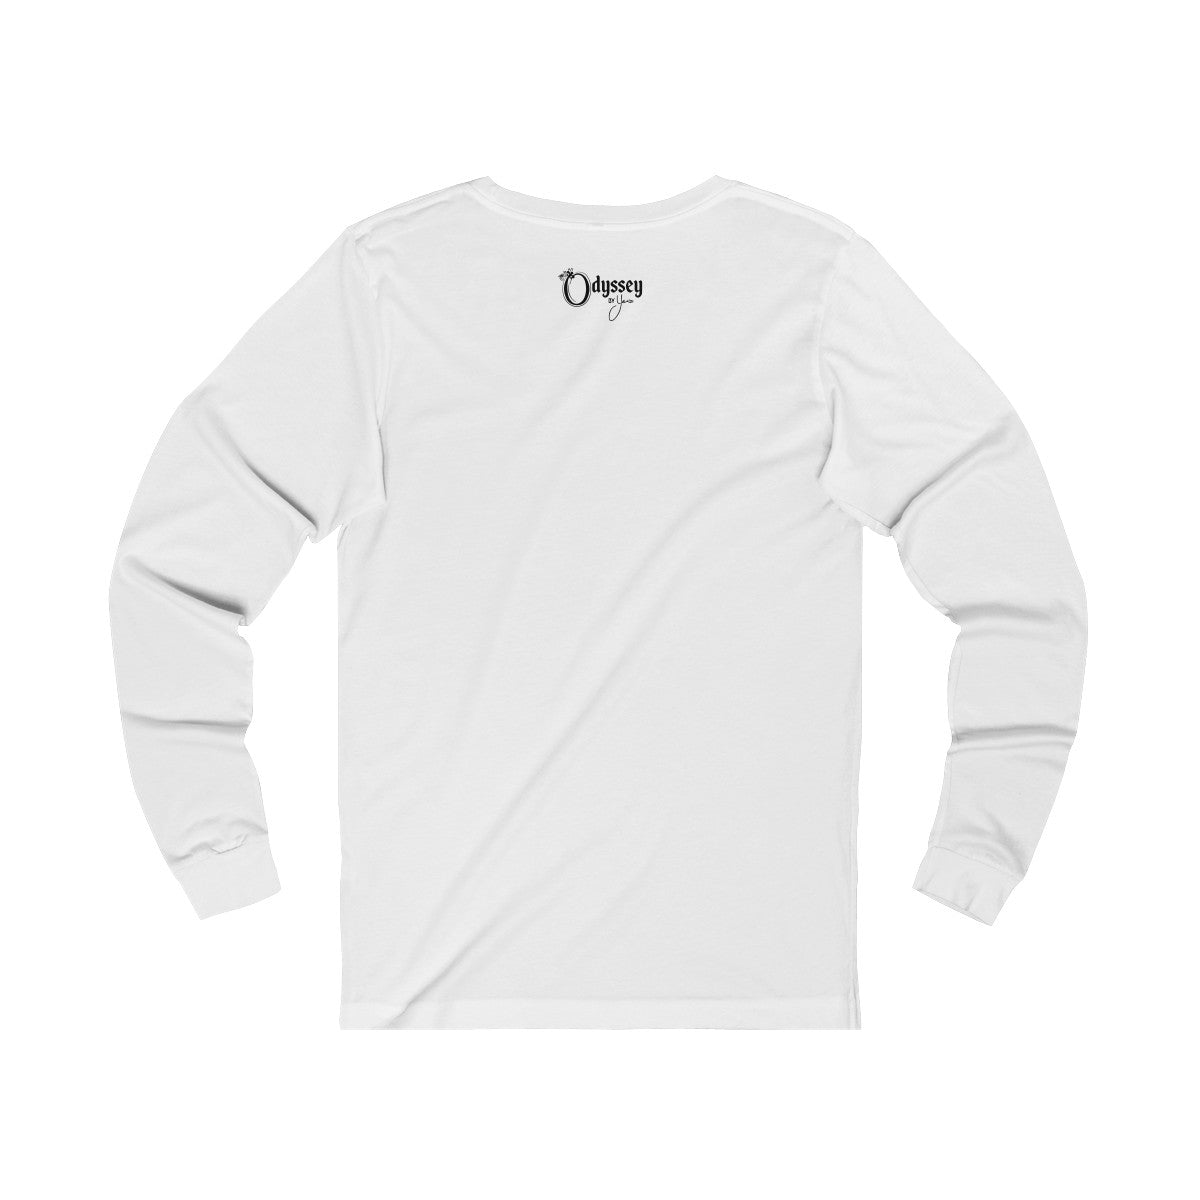 Odyssey Be Kind Women's Long Sleeve Tee